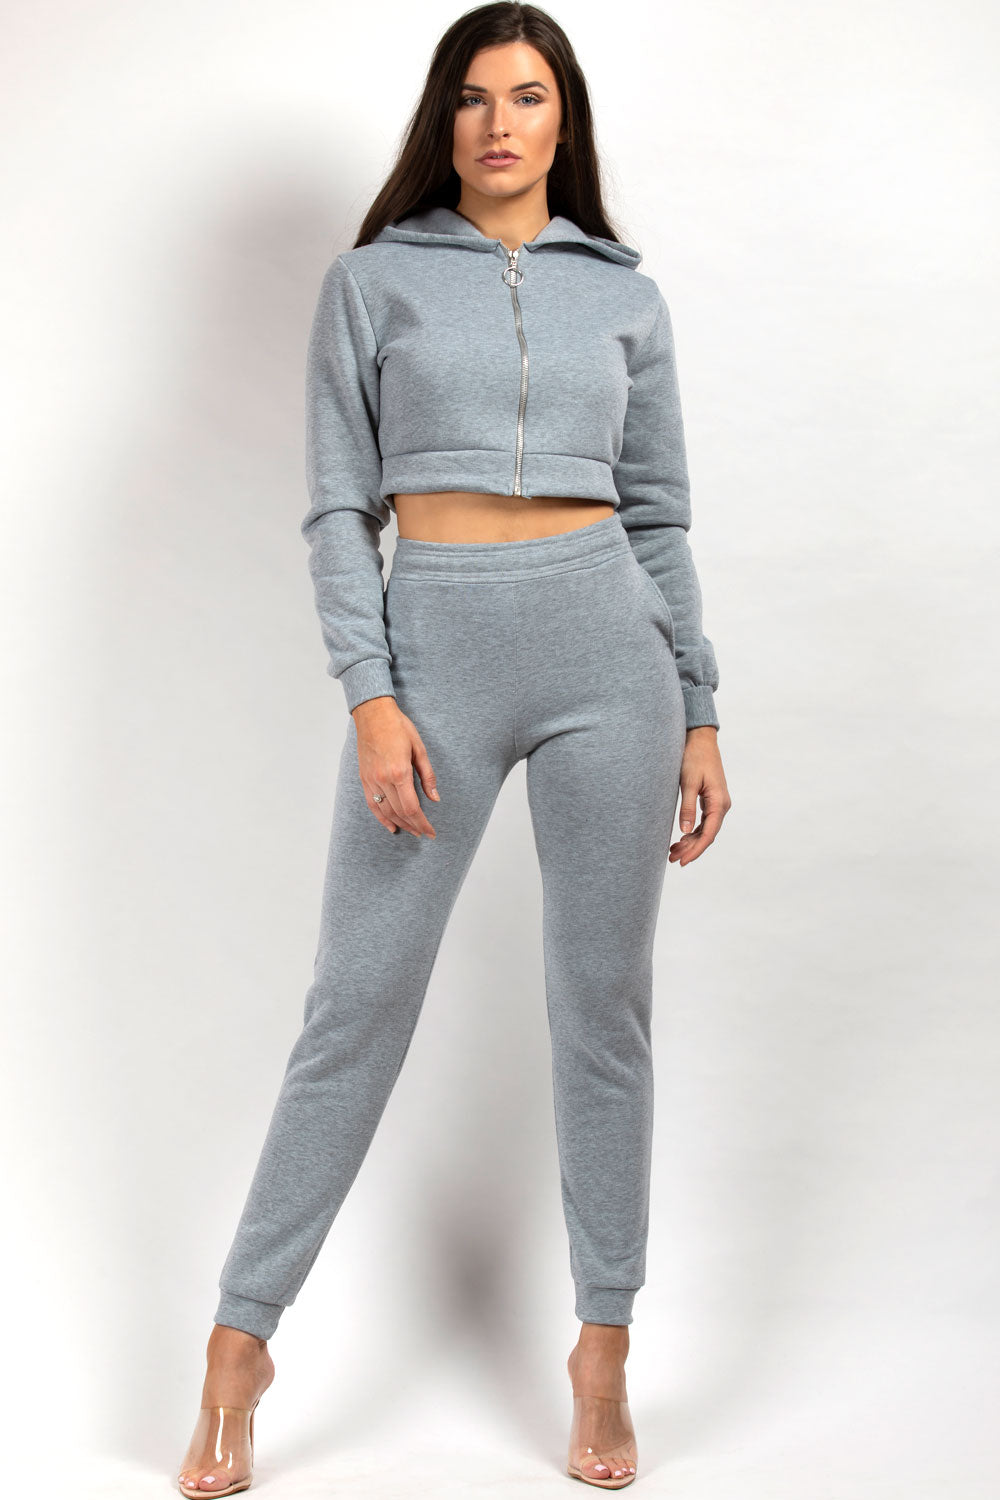 Grey Cropped Hoodie Joggers Loungewear Co-Ord Set